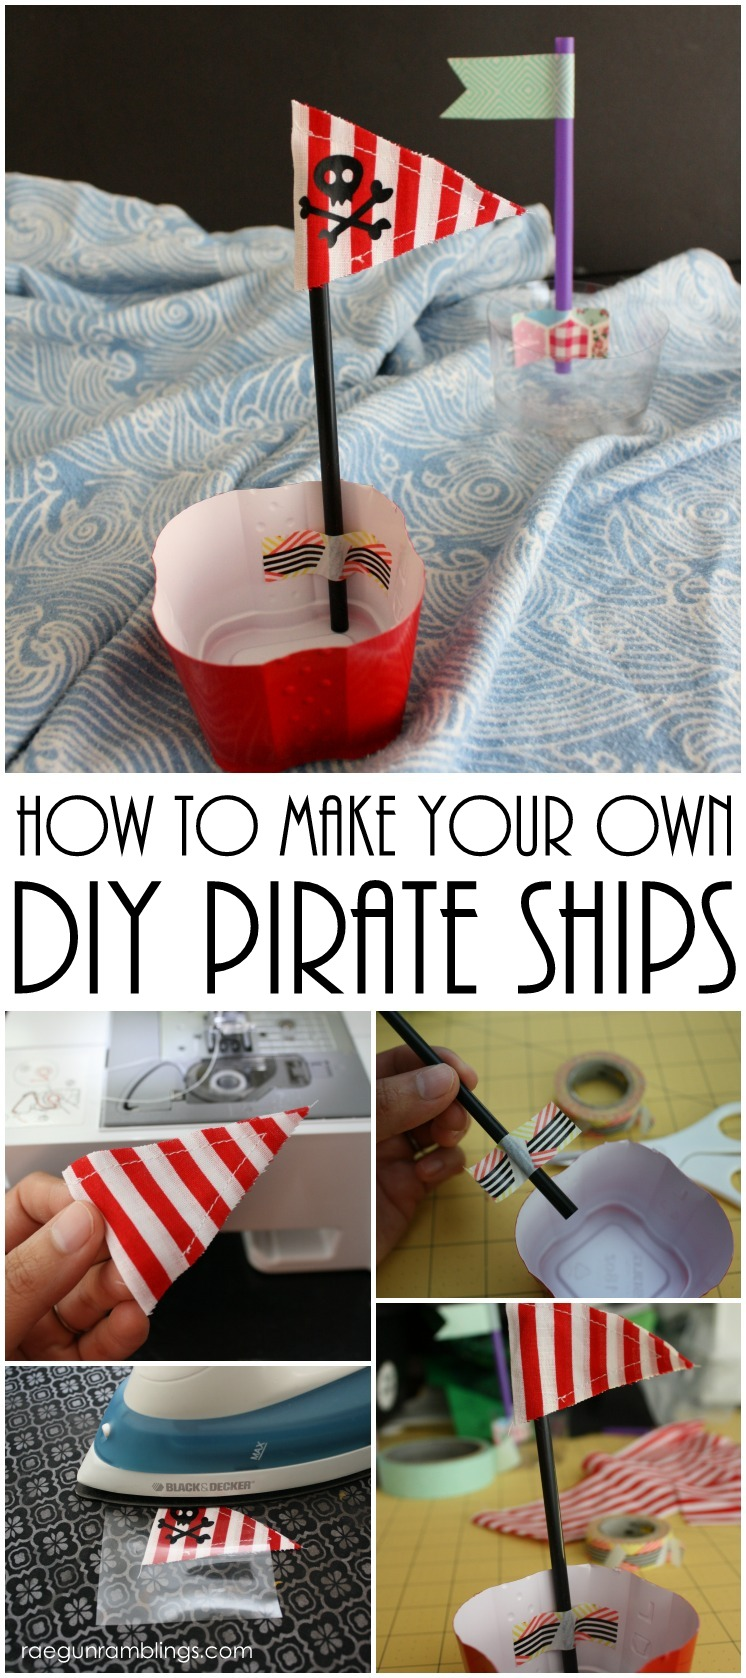 super cute pirate ships made from plastic cups. Great summer craft for the kids